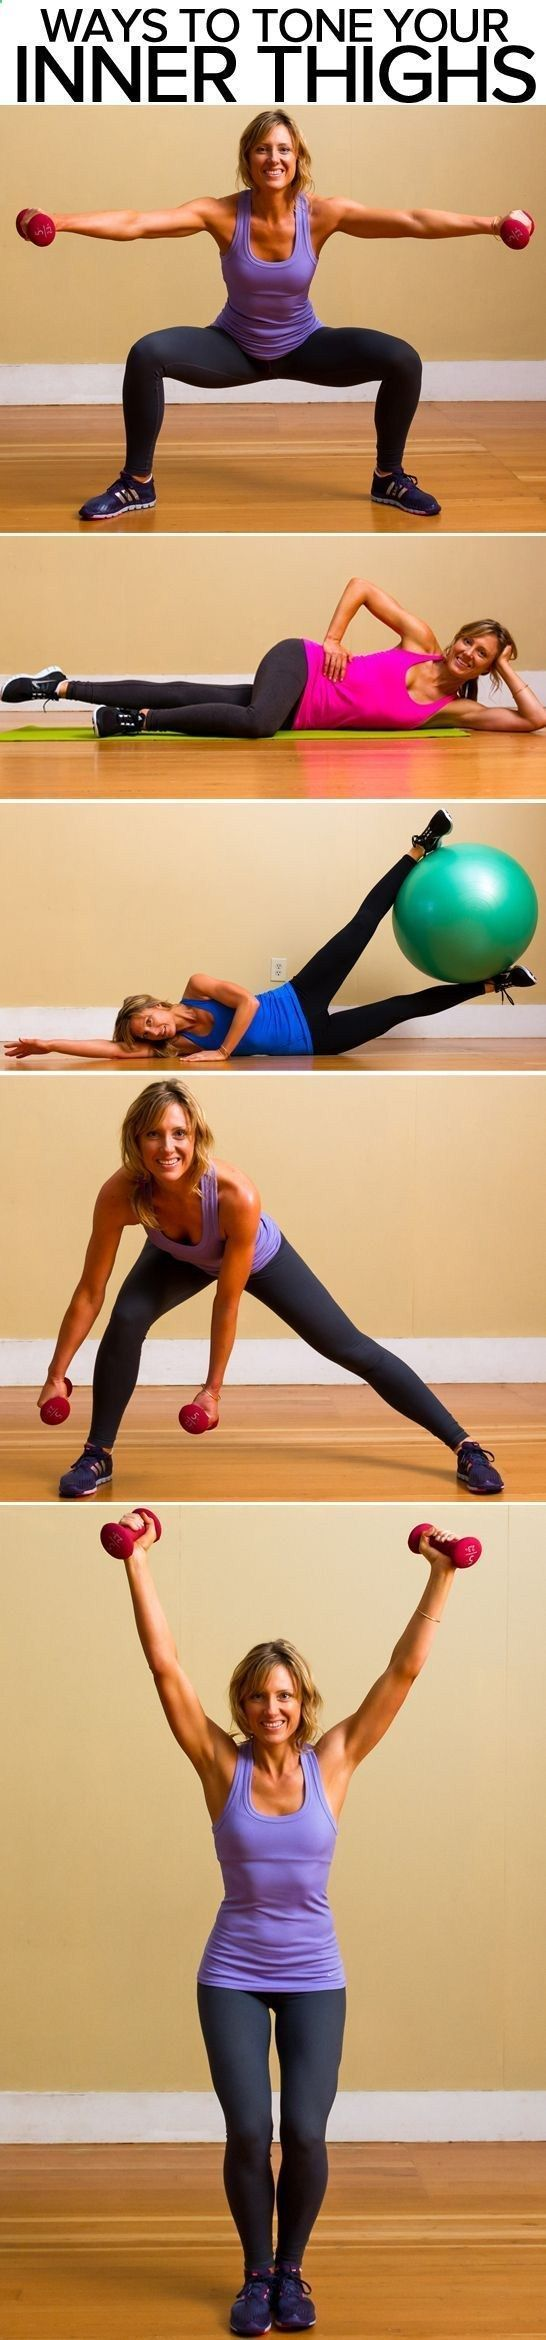 Tone your inner thighs. Need to work on that.